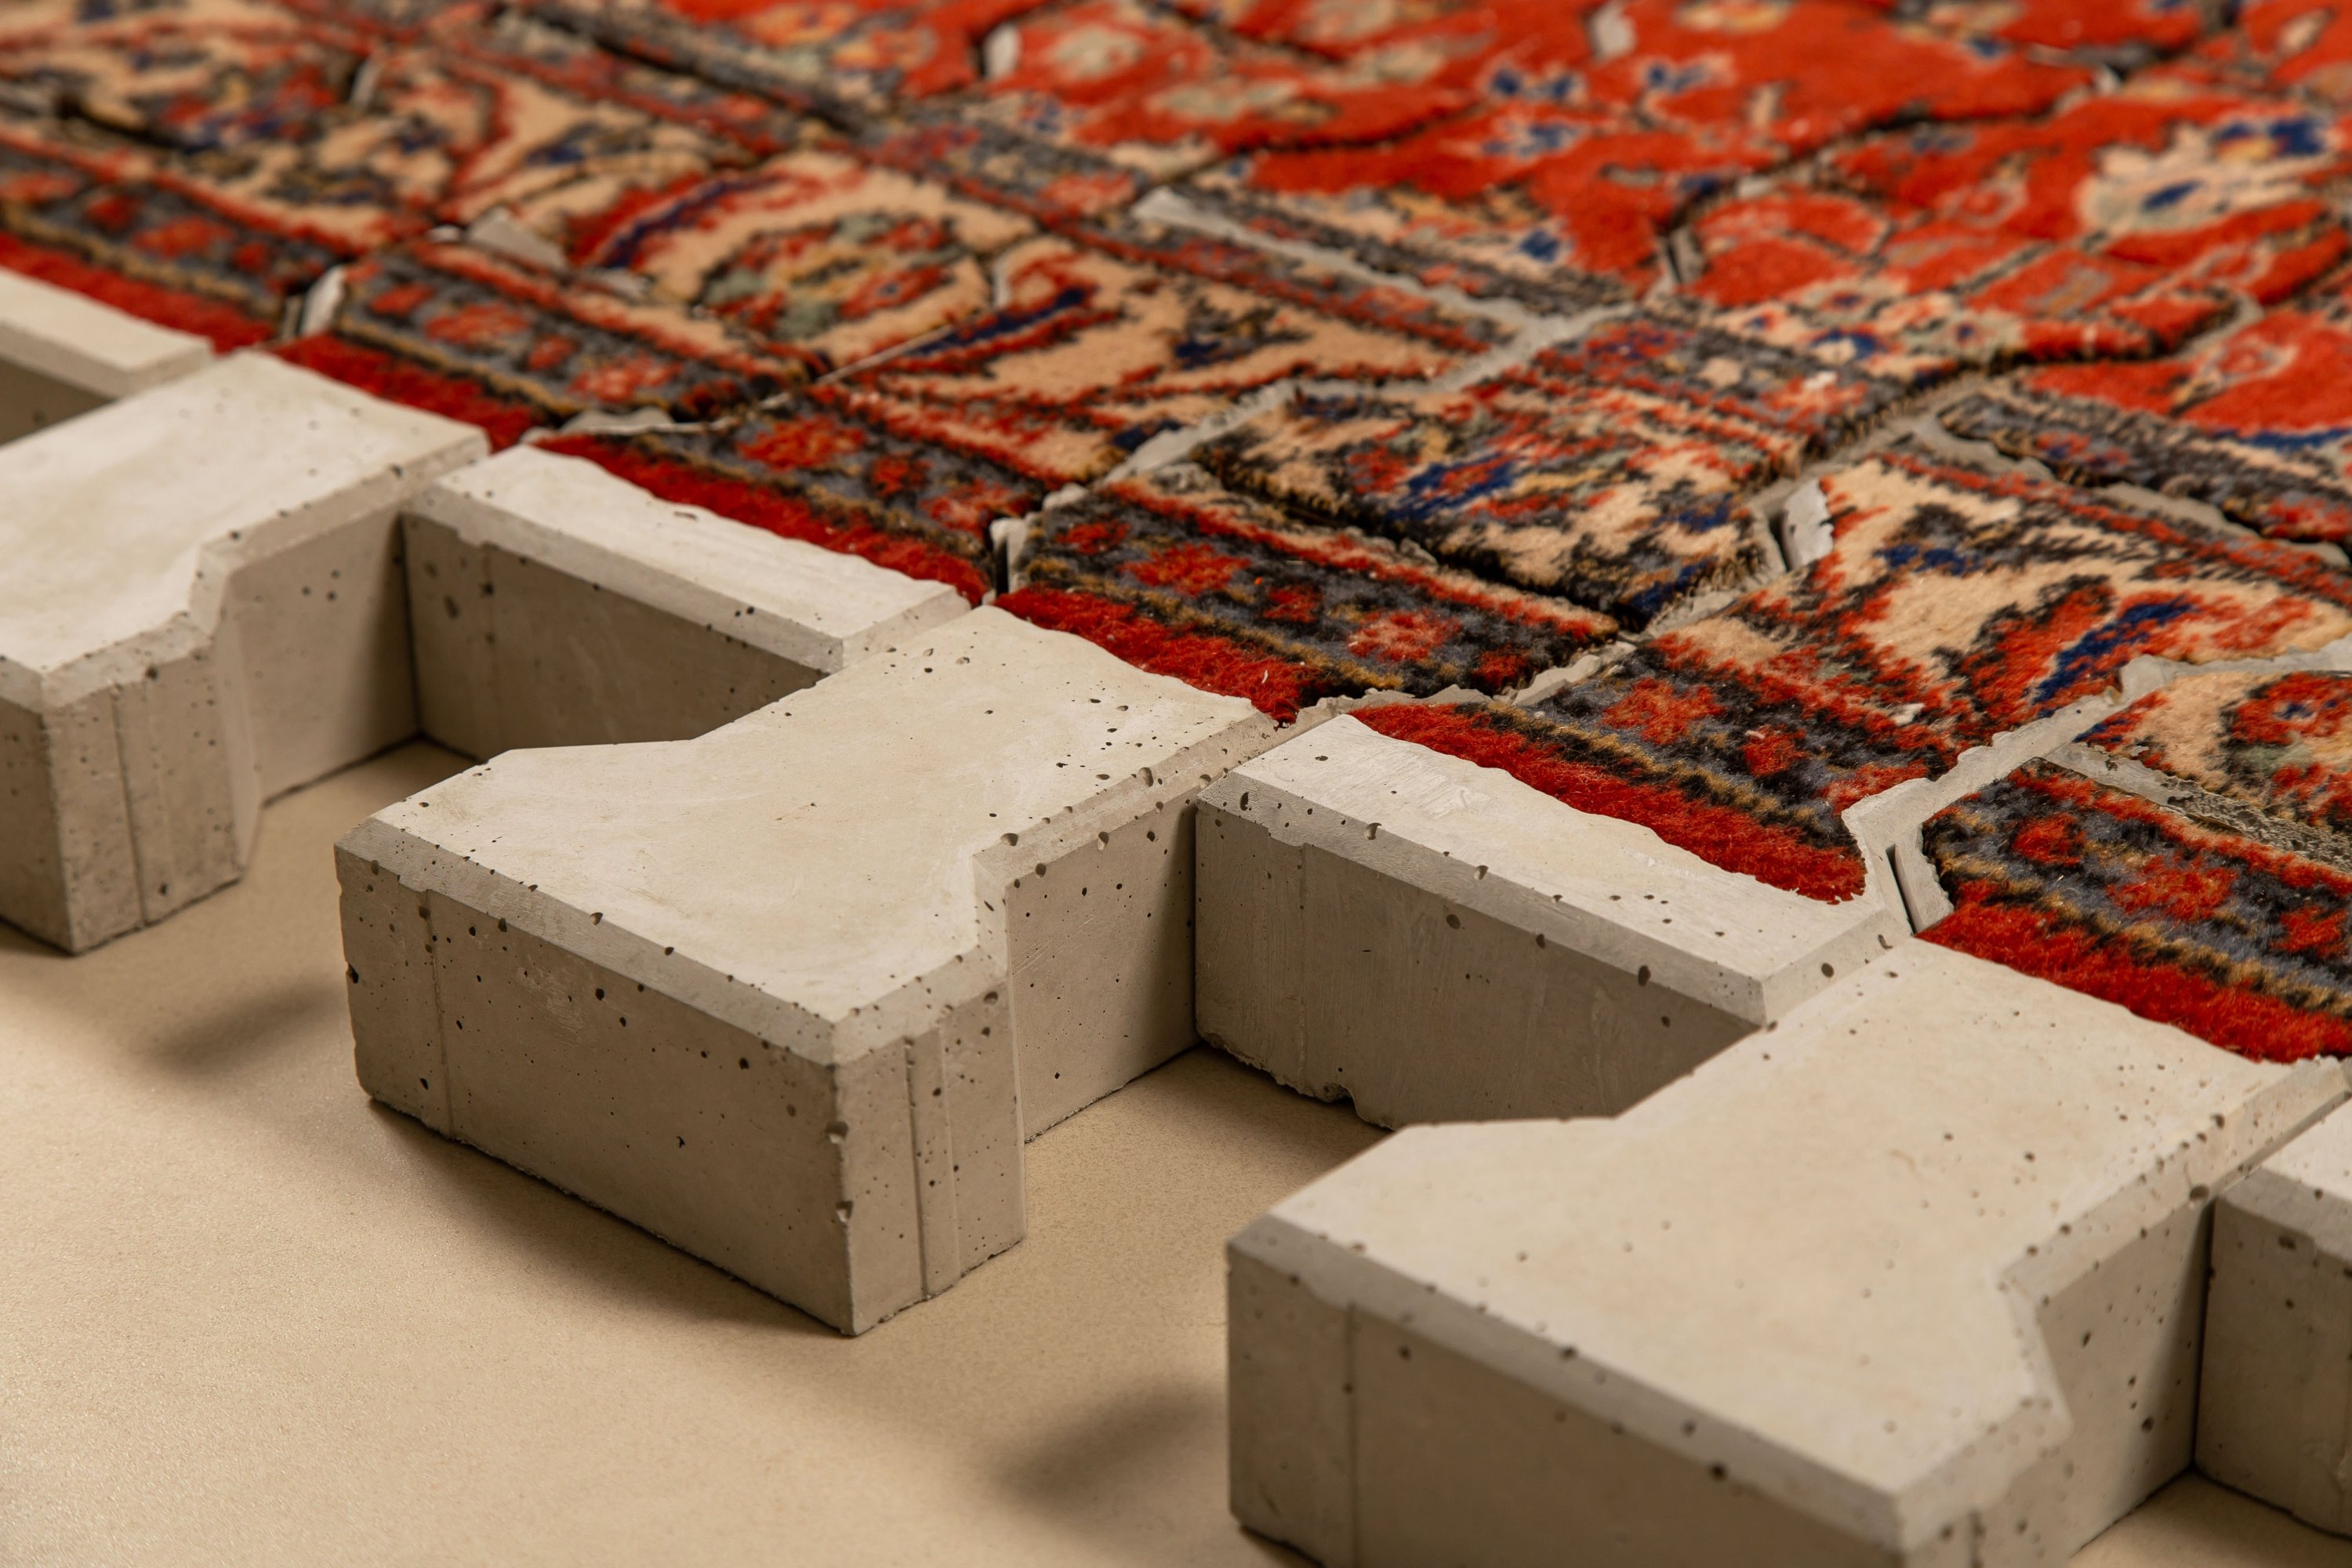 Ramazan Can, 'The Pain of Existence,' 2021, concrete and carpet, 130 pieces, each 6 by 13.5 by 22.5 centimeters. (Courtesy of Anna Laudel)